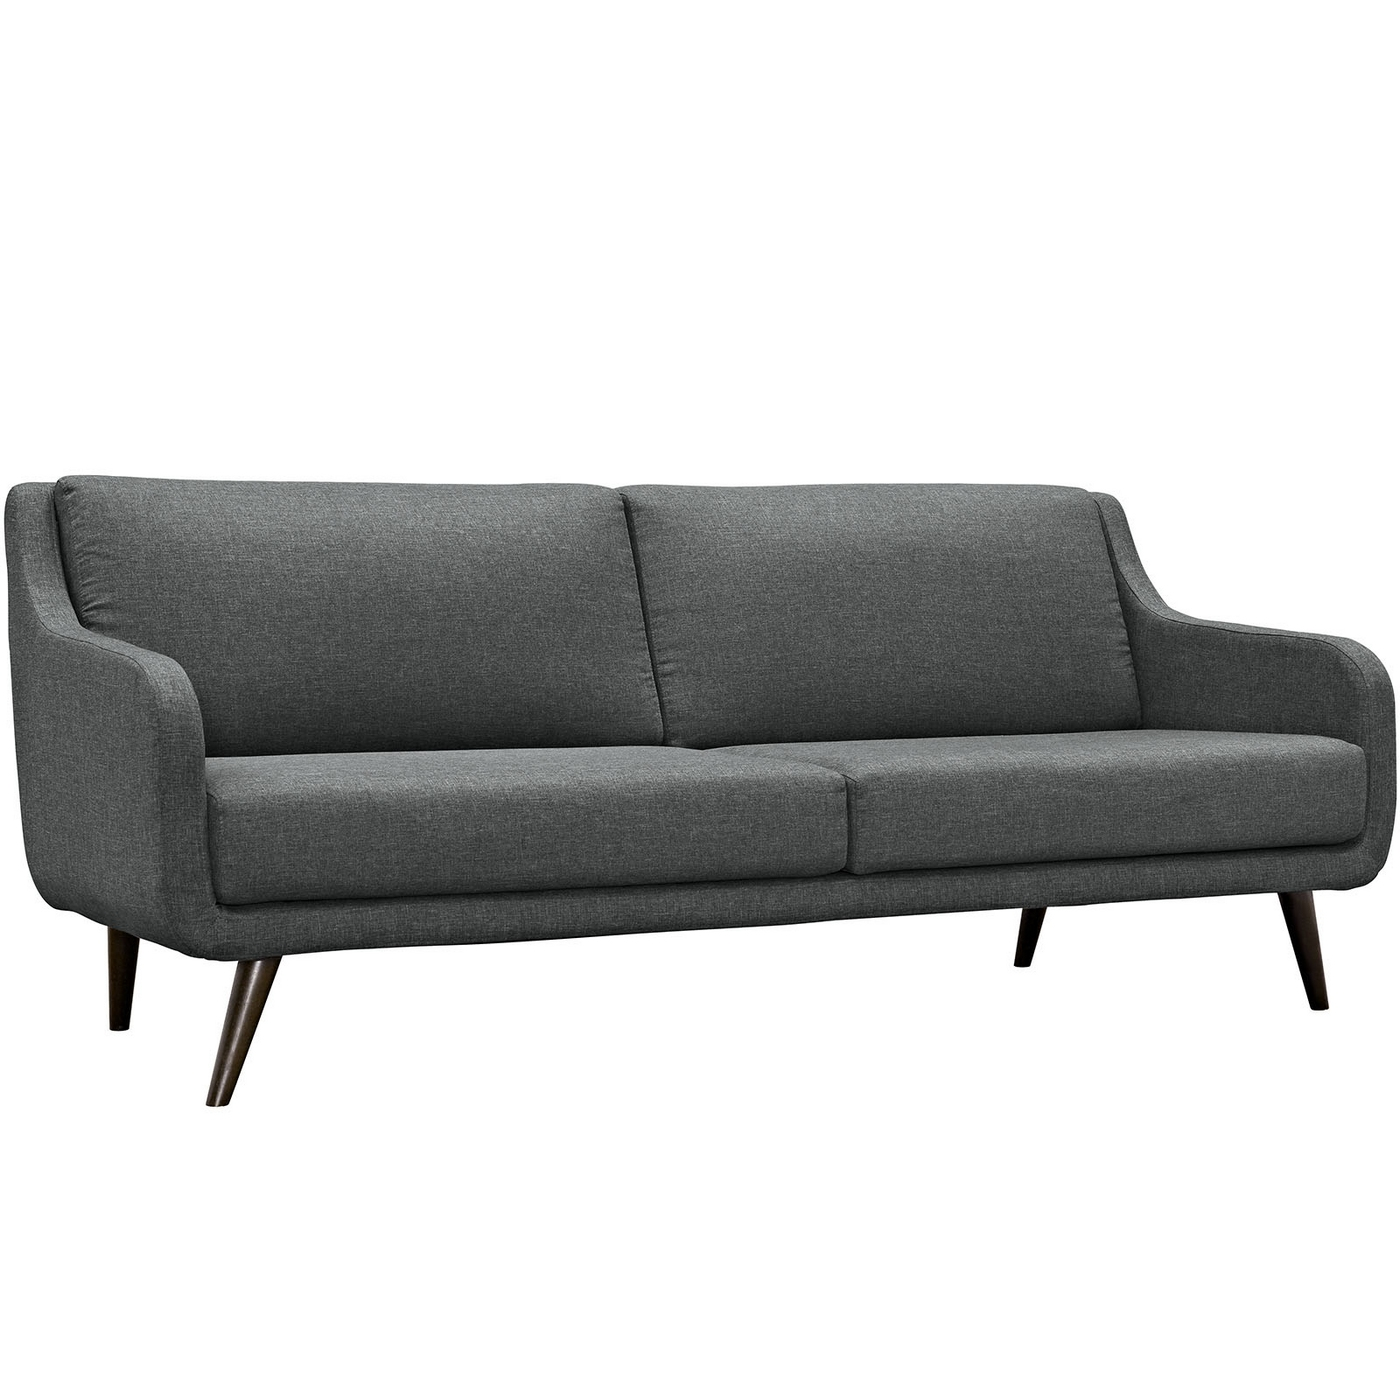 Verve mid century modern upholstered sofa with wood frame for Mid century modern upholstered chair